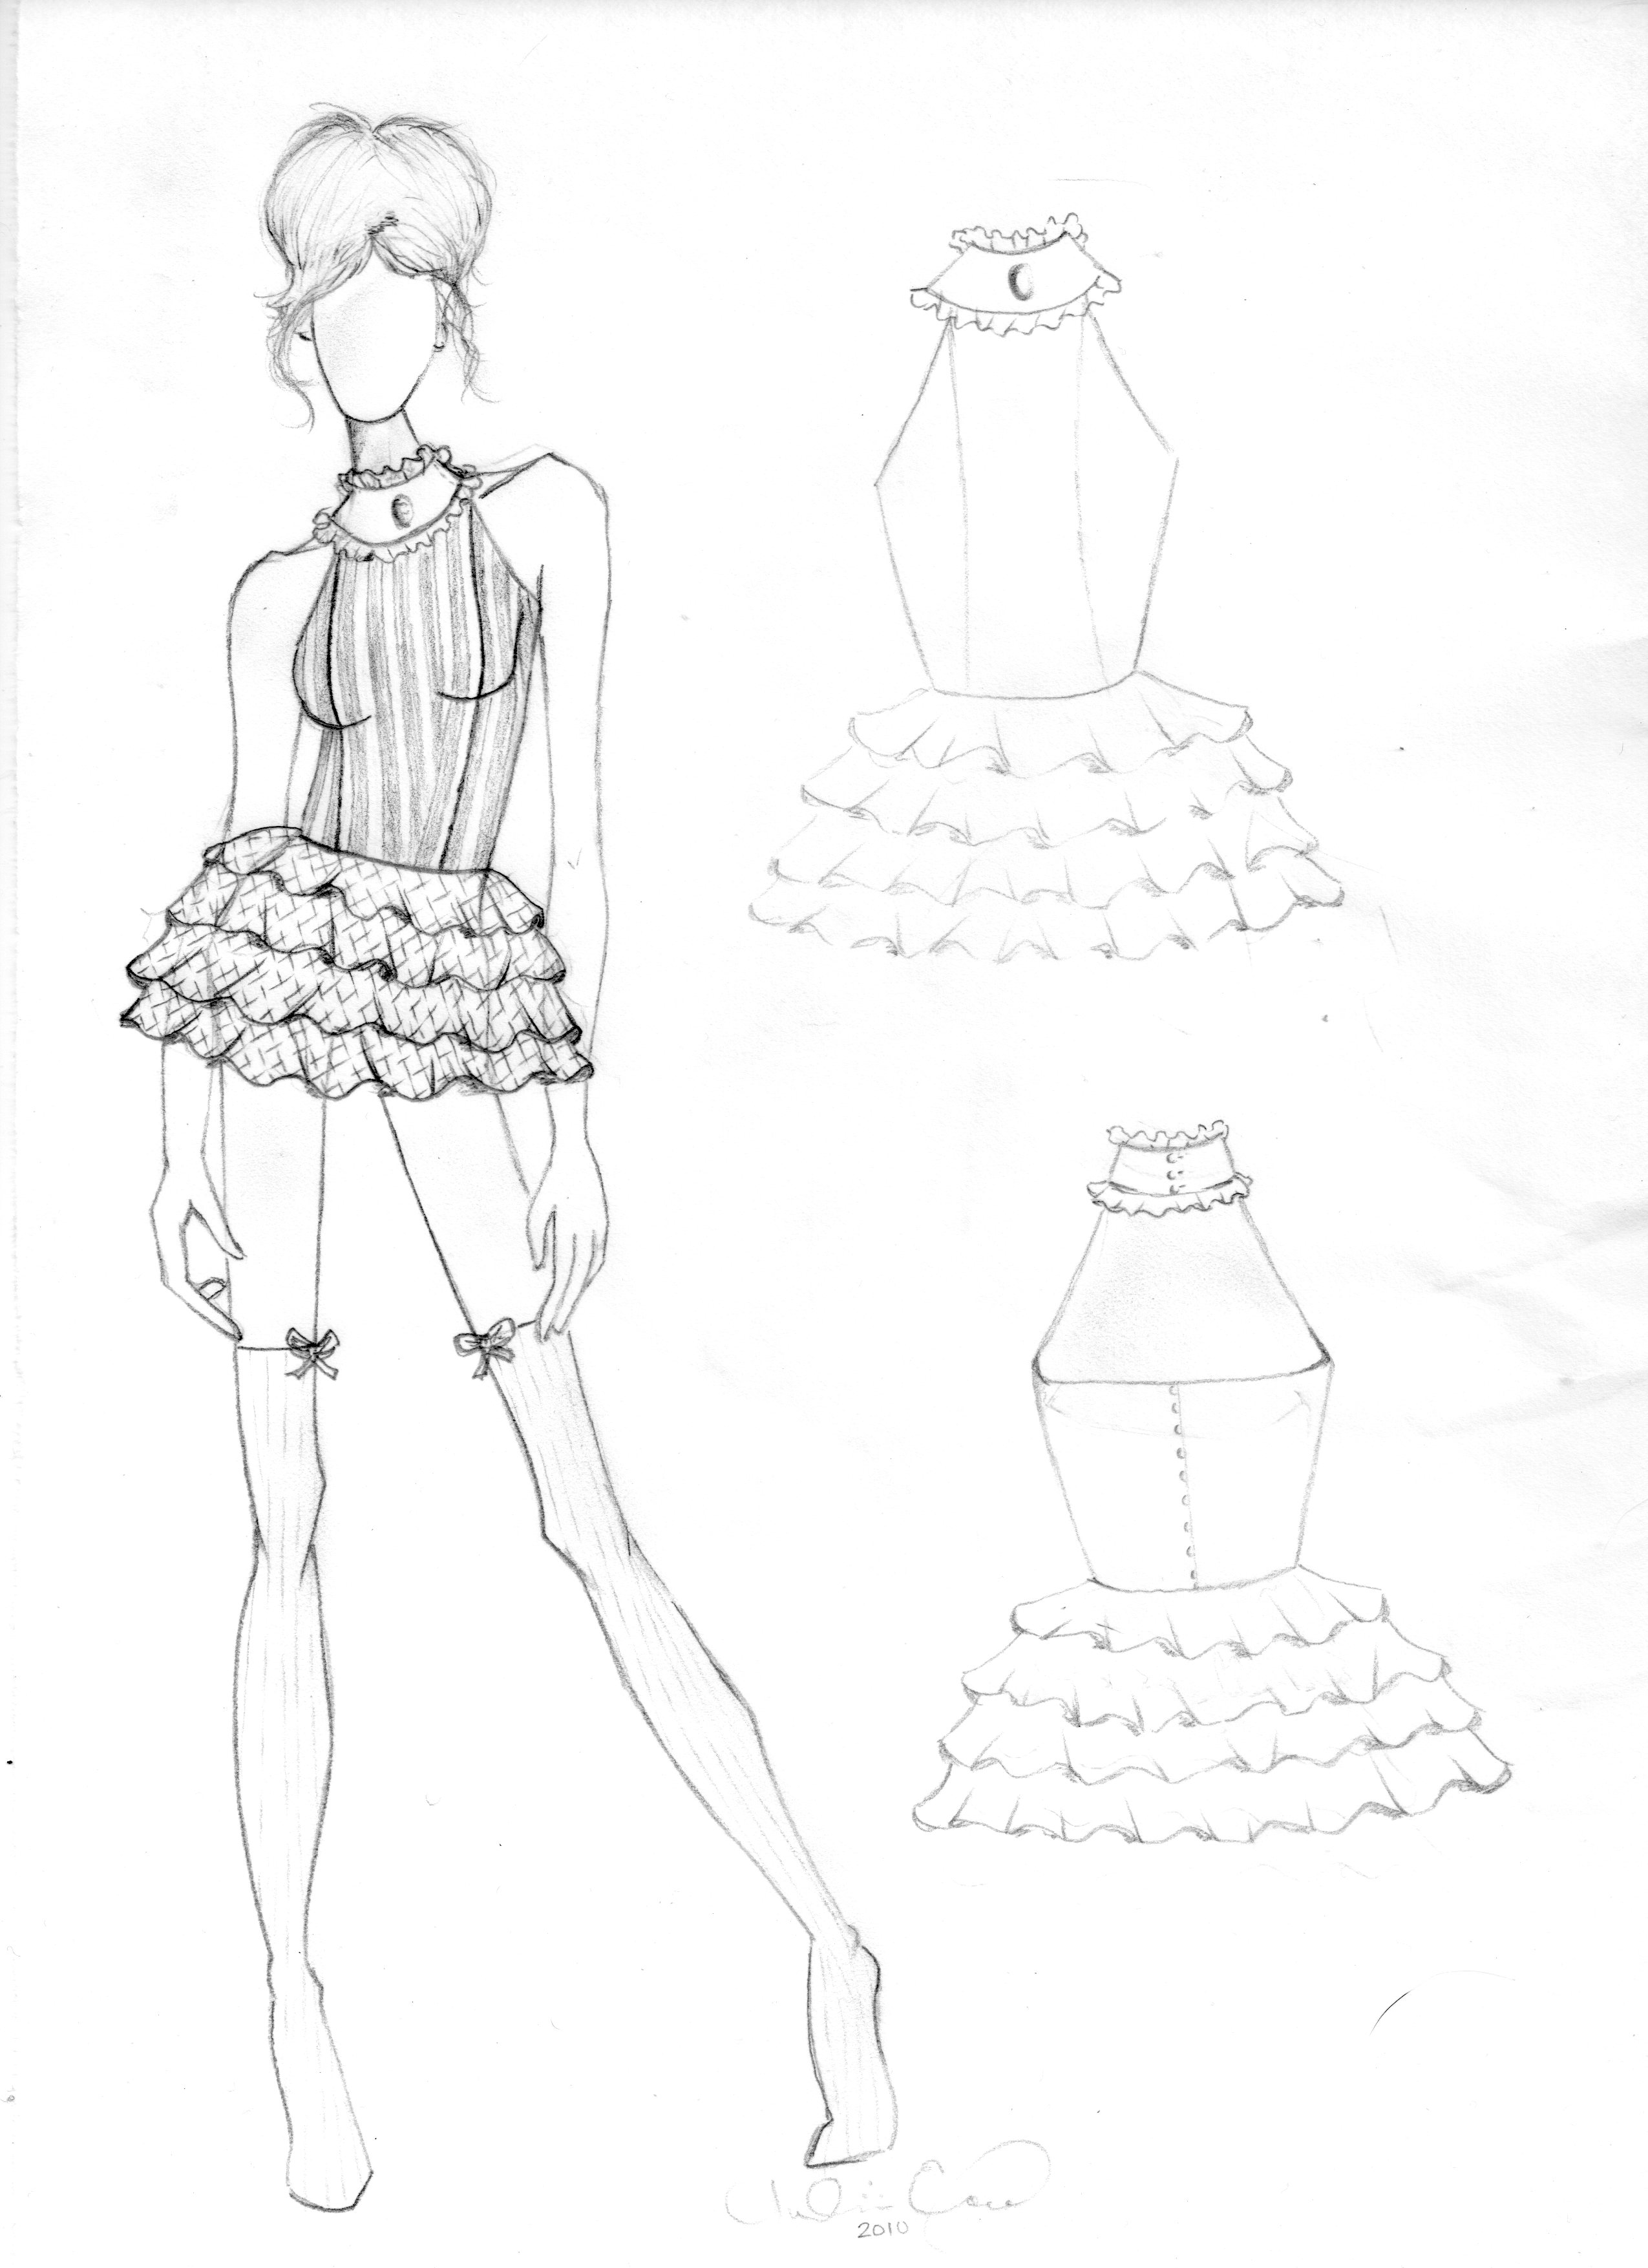 541417186427675696 as well Wit Babyjurkje also Dress Drawing in addition Id V 2289183 also Shani. on lace pencil skirt